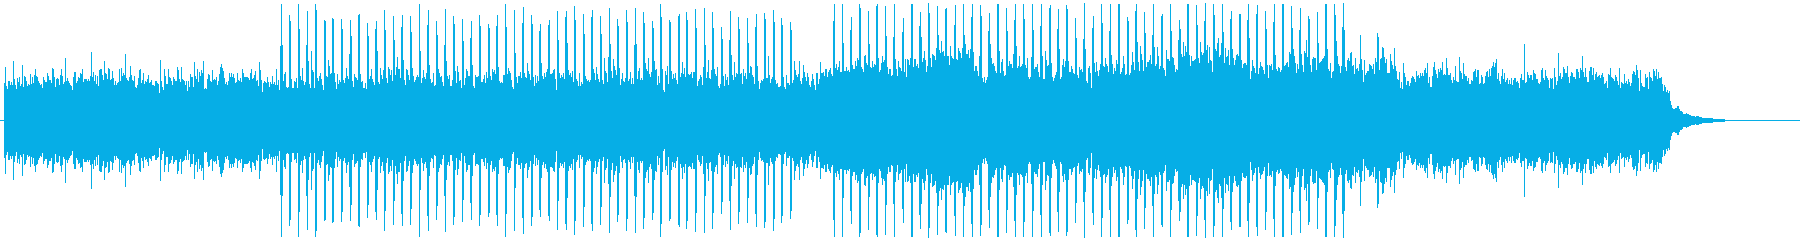 Introduction 2's reproduced waveform